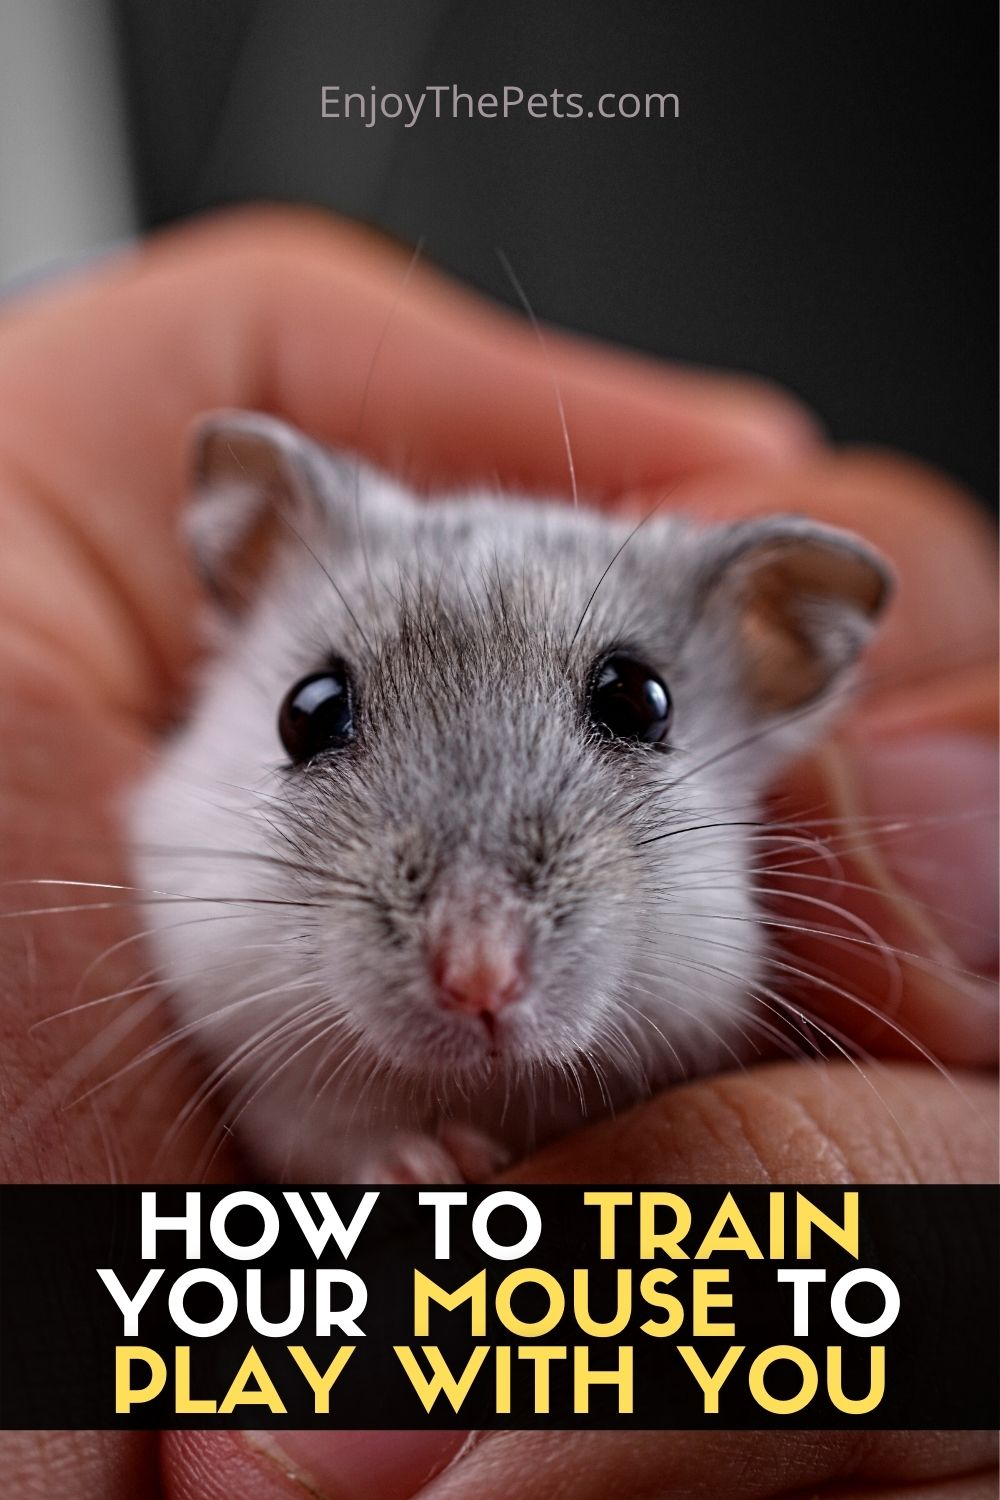 HOW TO TRAIN YOUR MOUSE TO PLAY WITH YOU